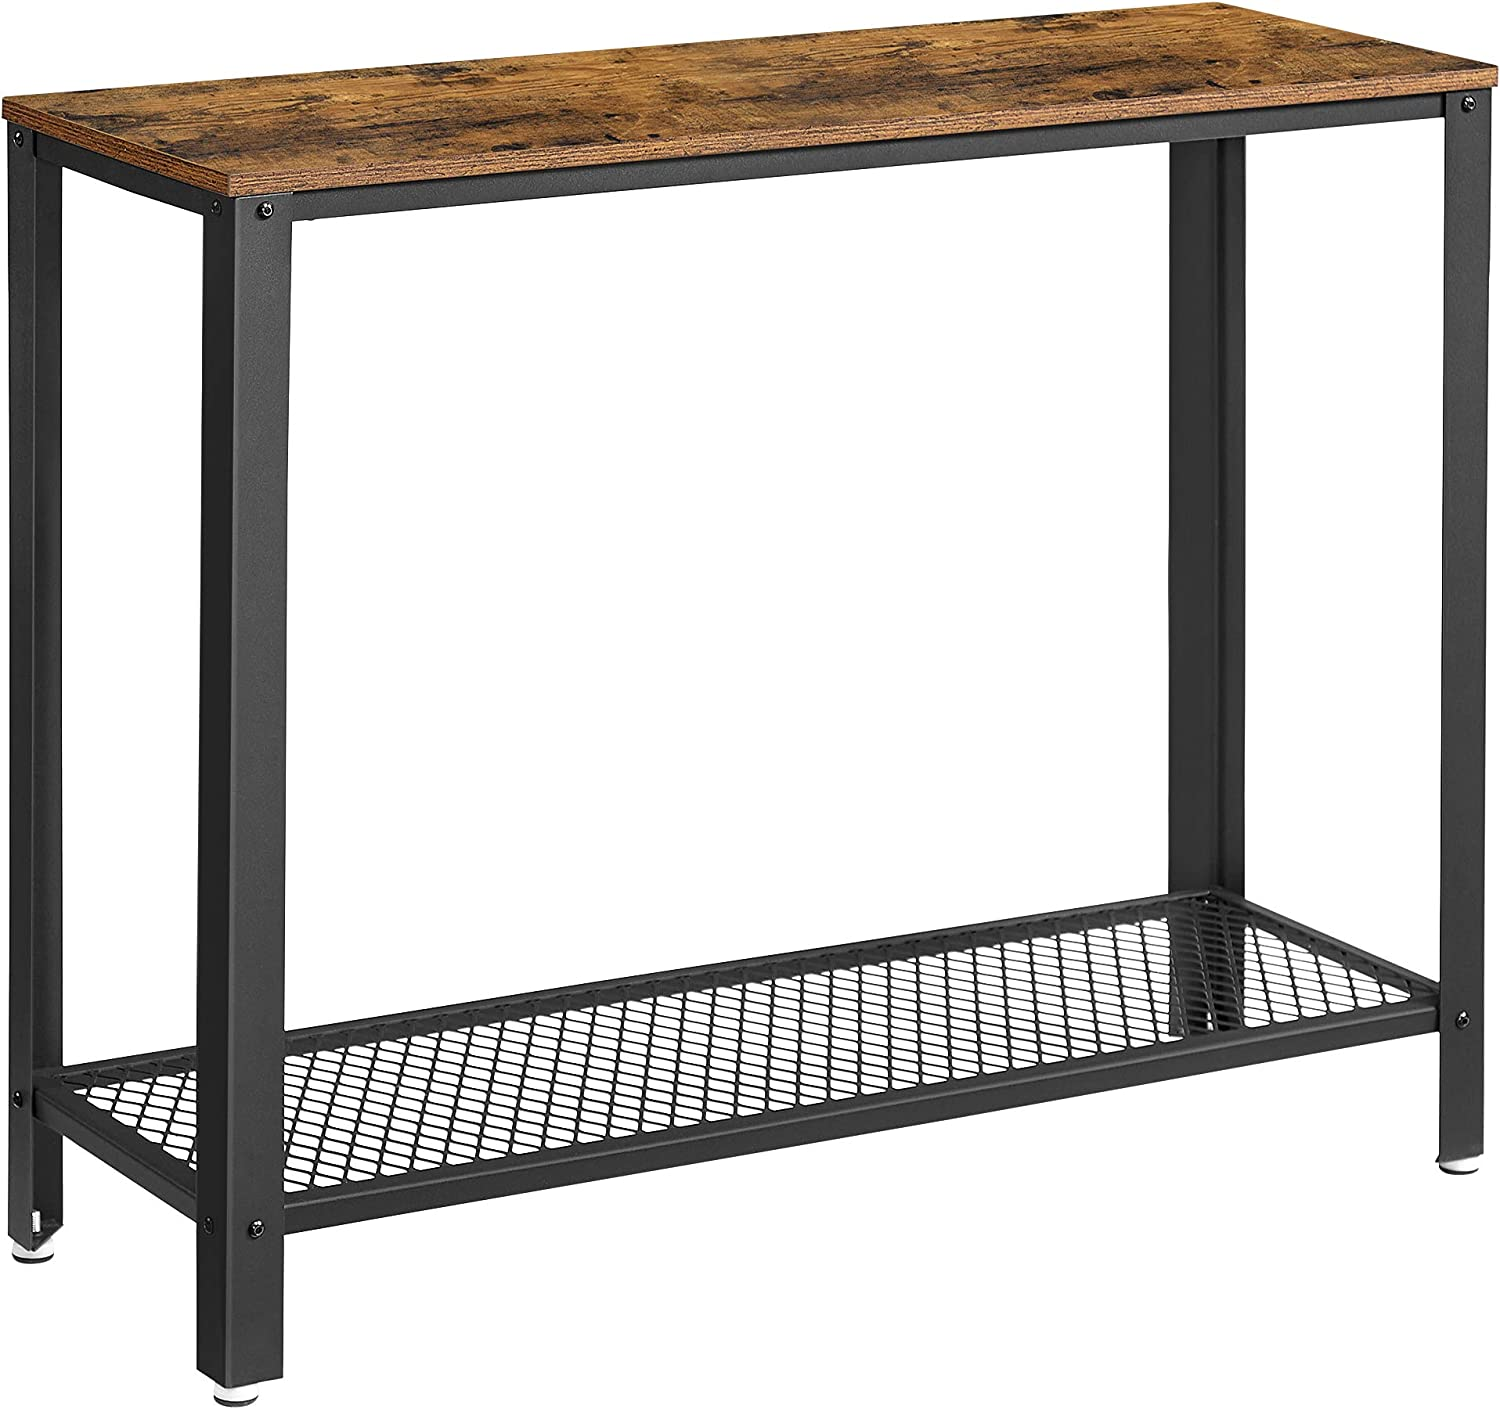 VASAGLE Rustic Brown ULNT80X Console Table $58.69 Coupon